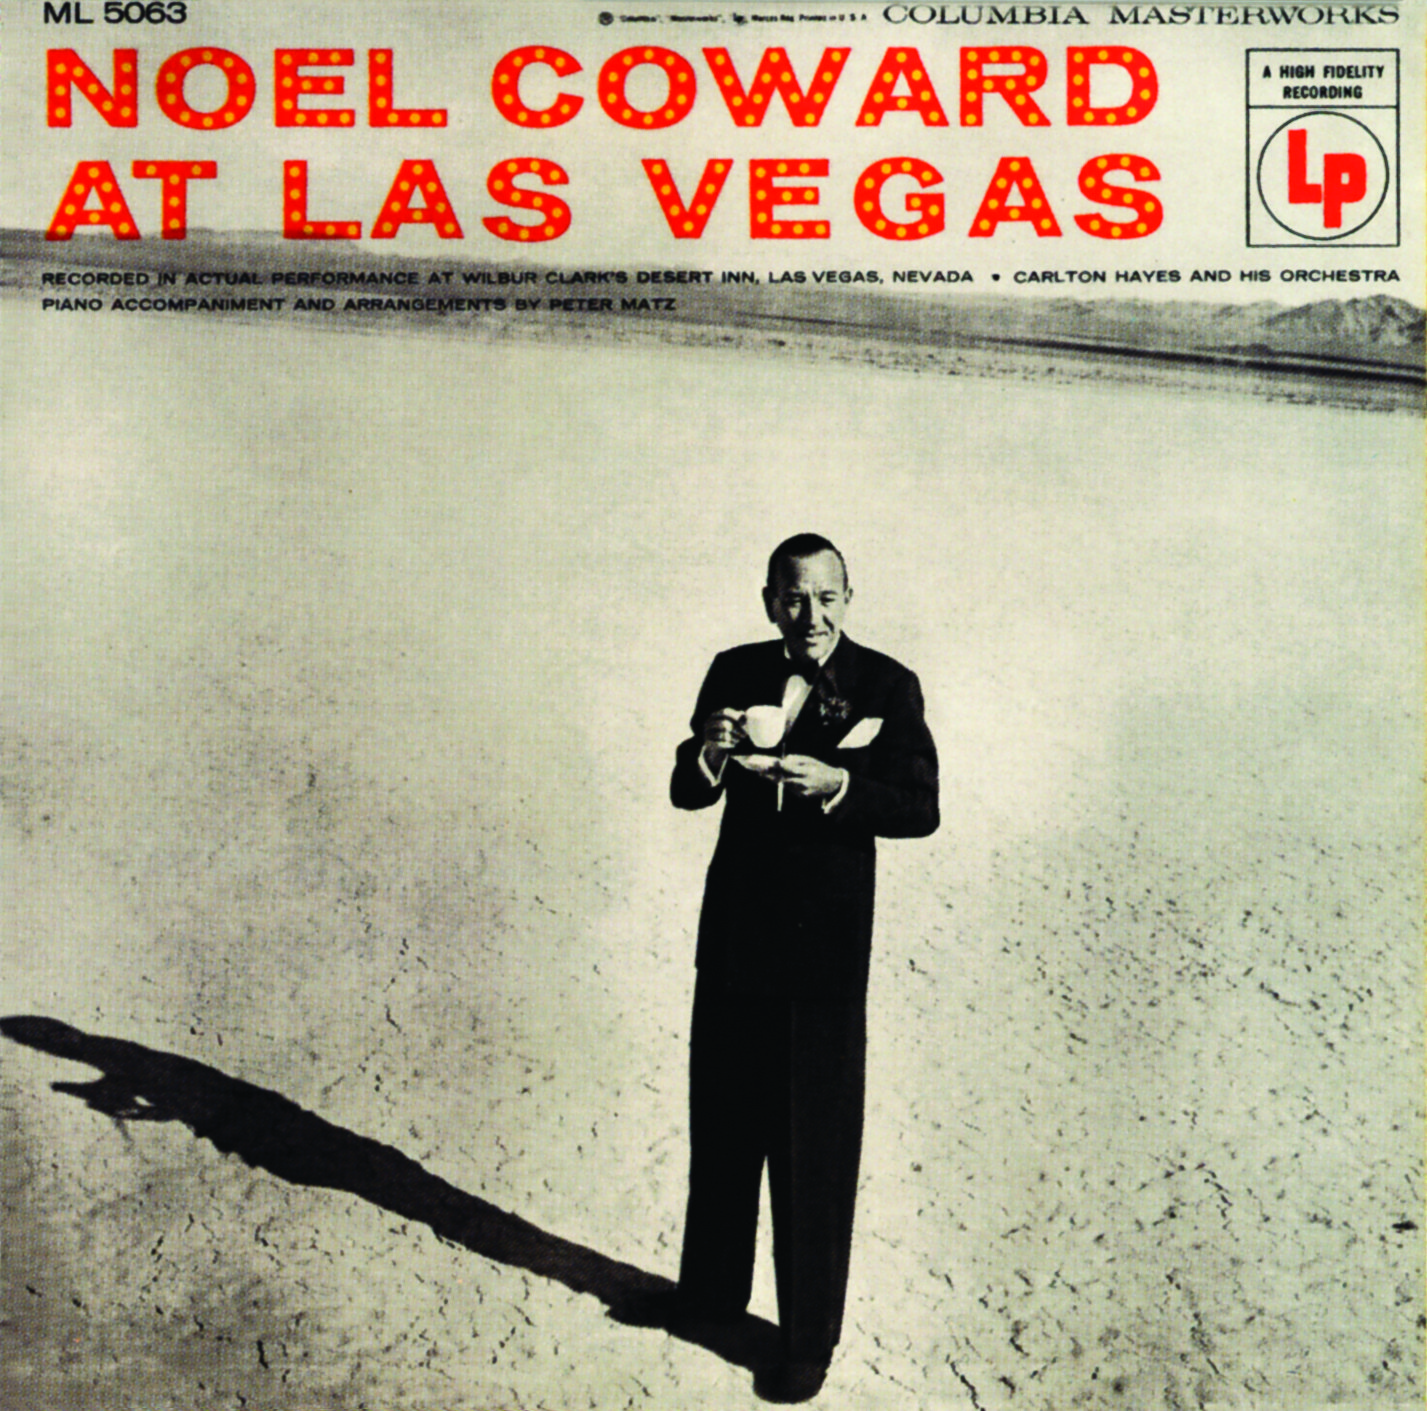 Noel Coward at Las Vegas